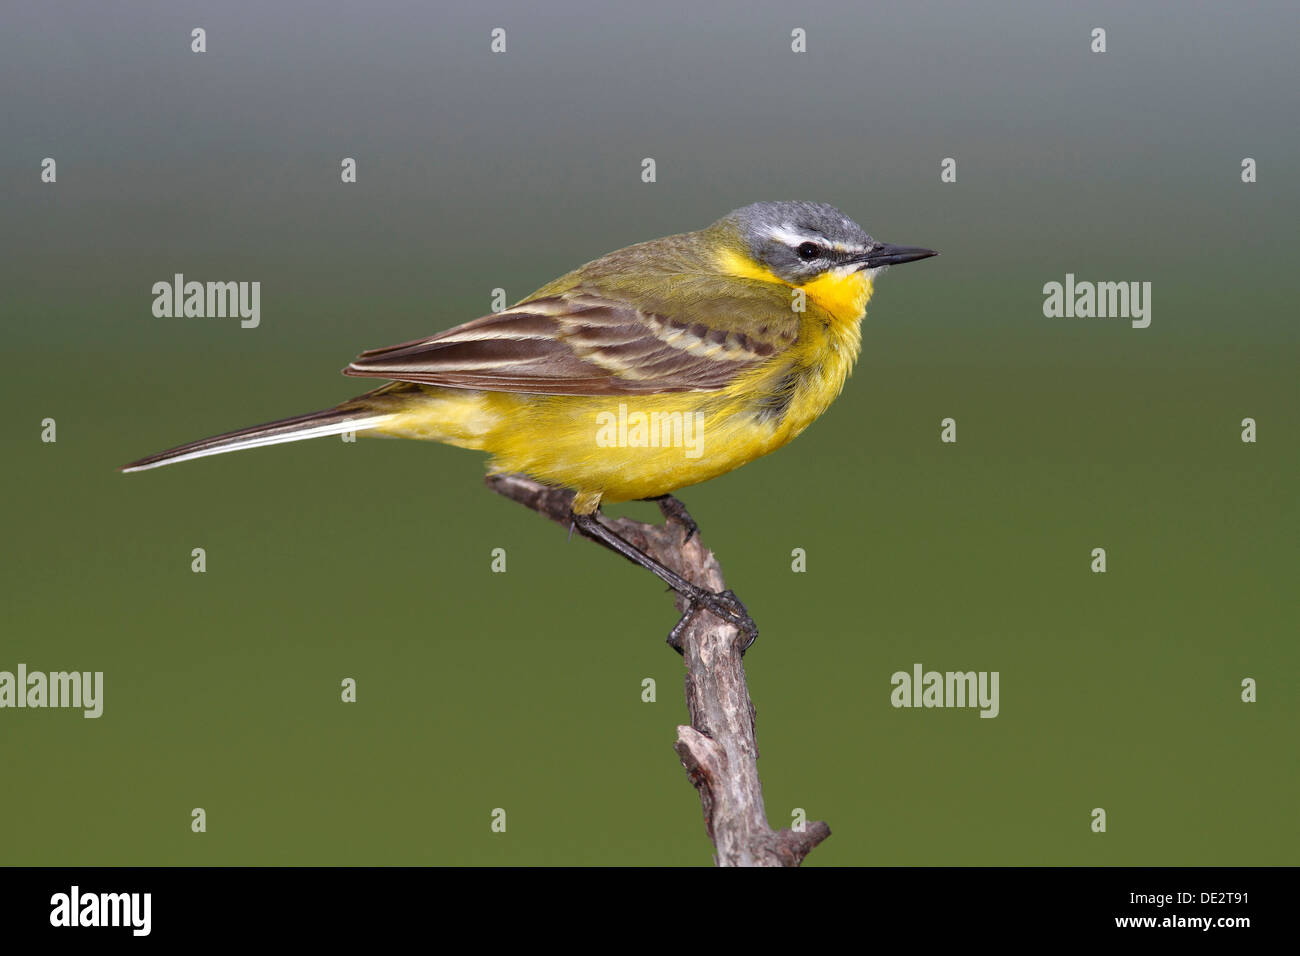 Yellow Wagtail (Motacilla flava), male sining on perch, Apetlon, Lake Neusiedl, Burgenland, Austria, Europe Stock Photo